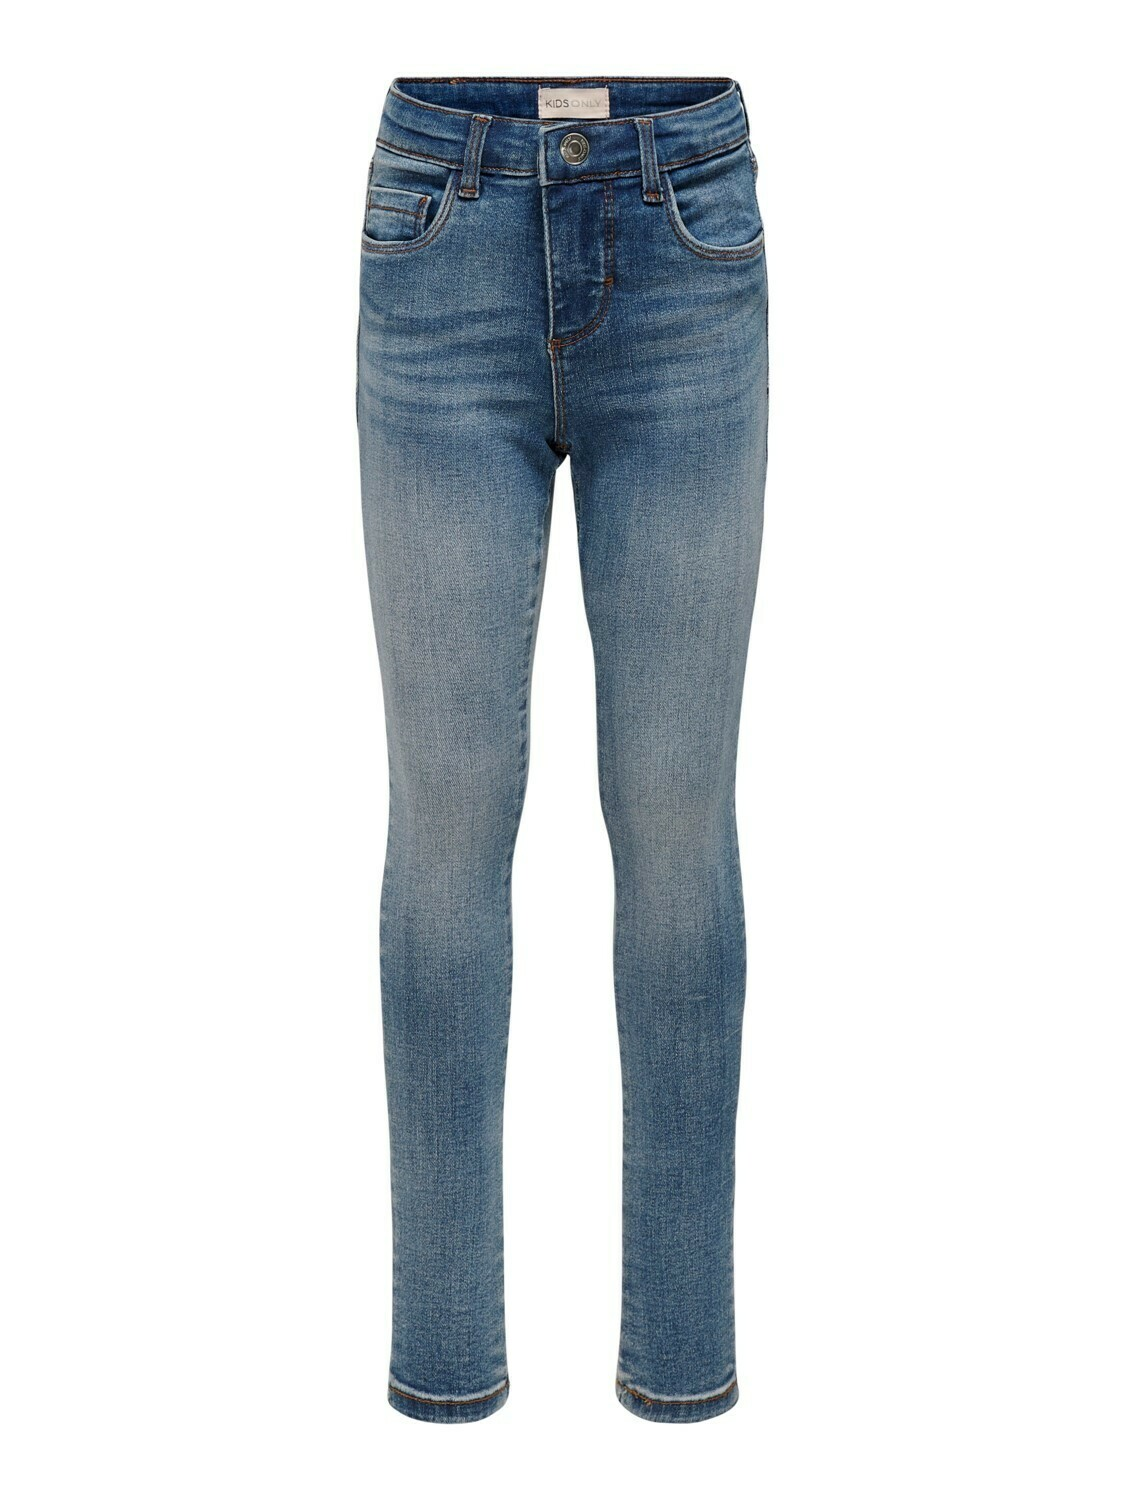 (*) KIDS Jeansbroek skinny - RACHEL - medium blue